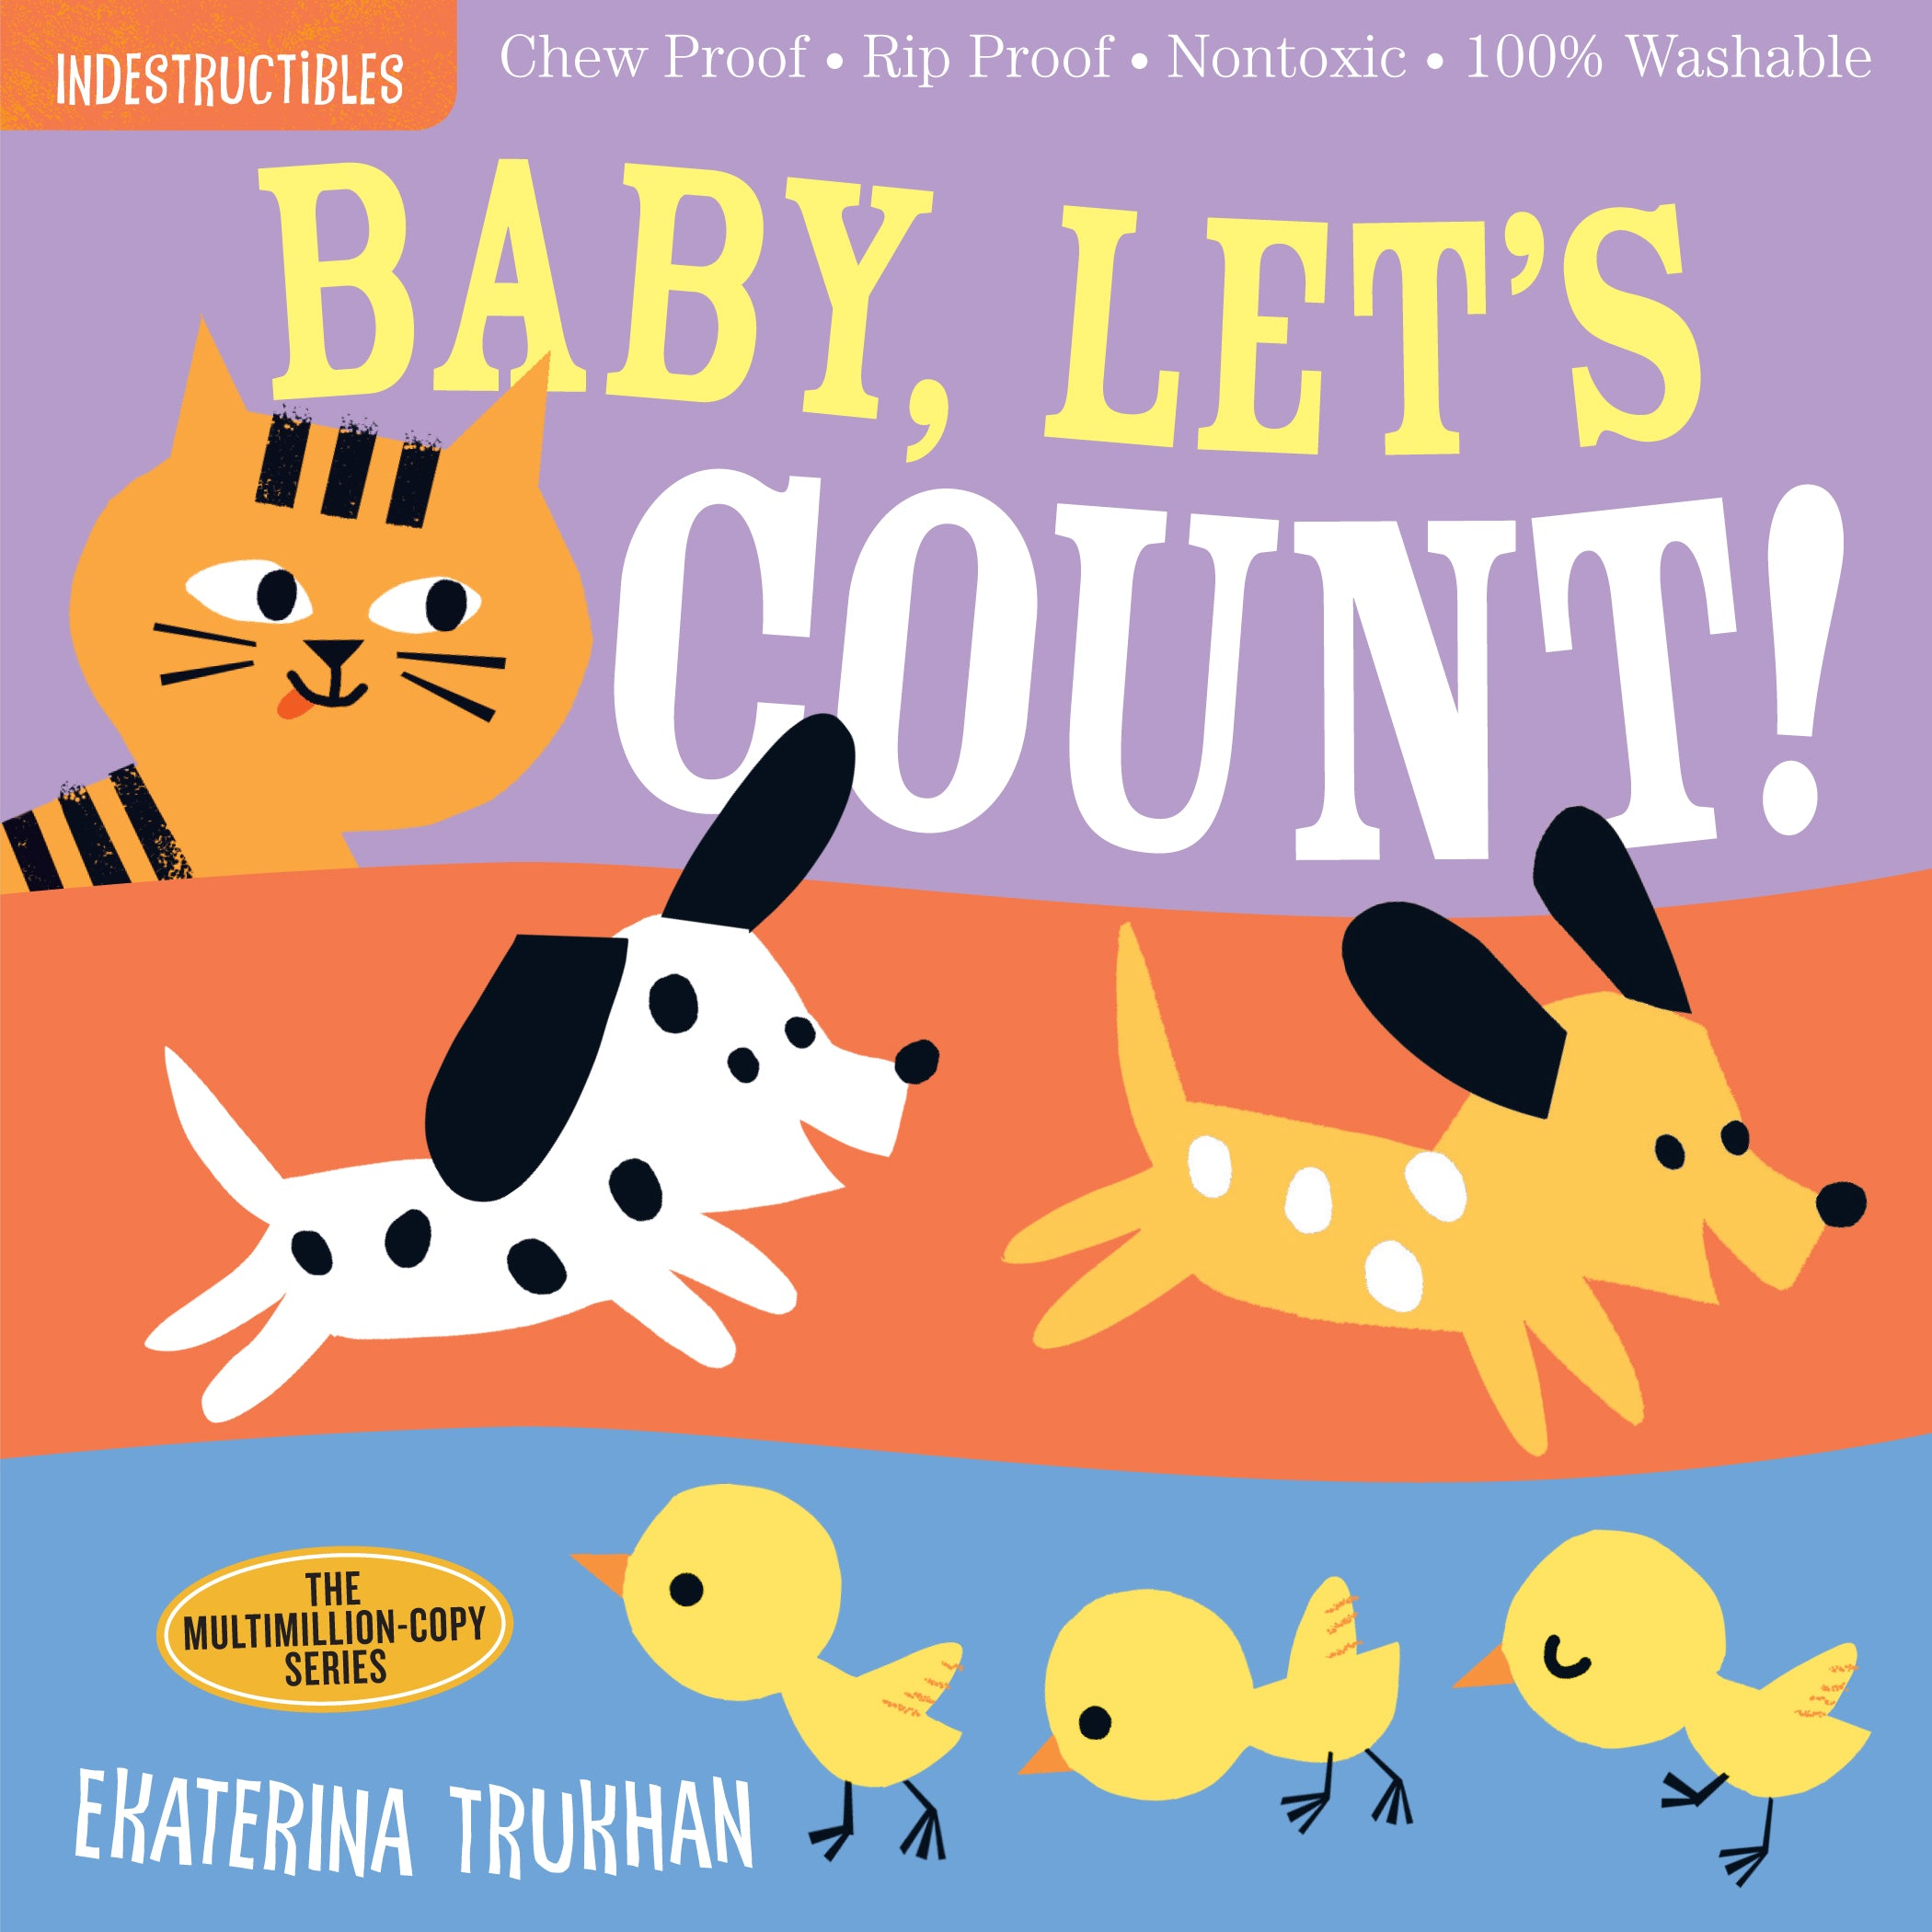 Indestructibles Book - Baby, Let's Count